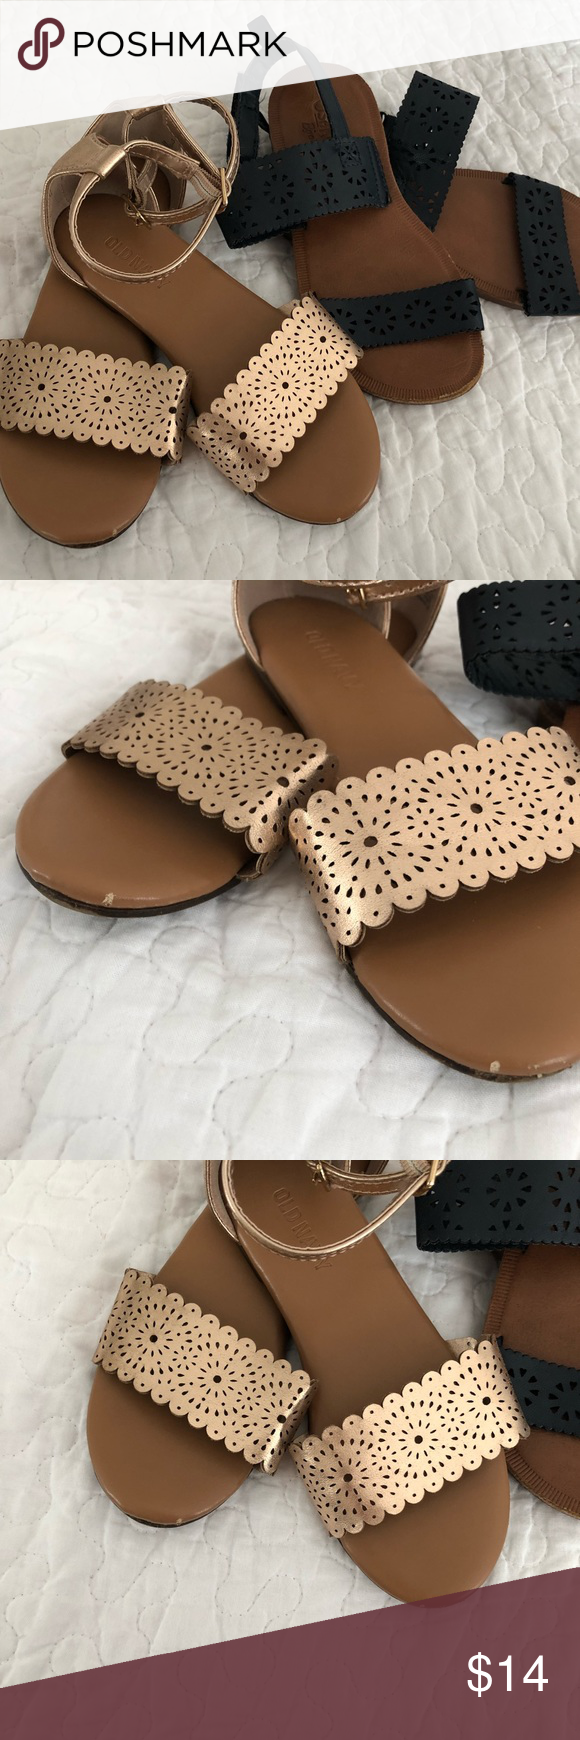 eaf71c1cd56 Girls Sandal Bundle - Strap Rosegold   Navy Velcro Includes (2) pairs size  12 Good condition (minor wear shown in photos) Old Navy Rose Gold pretty  Strap ...